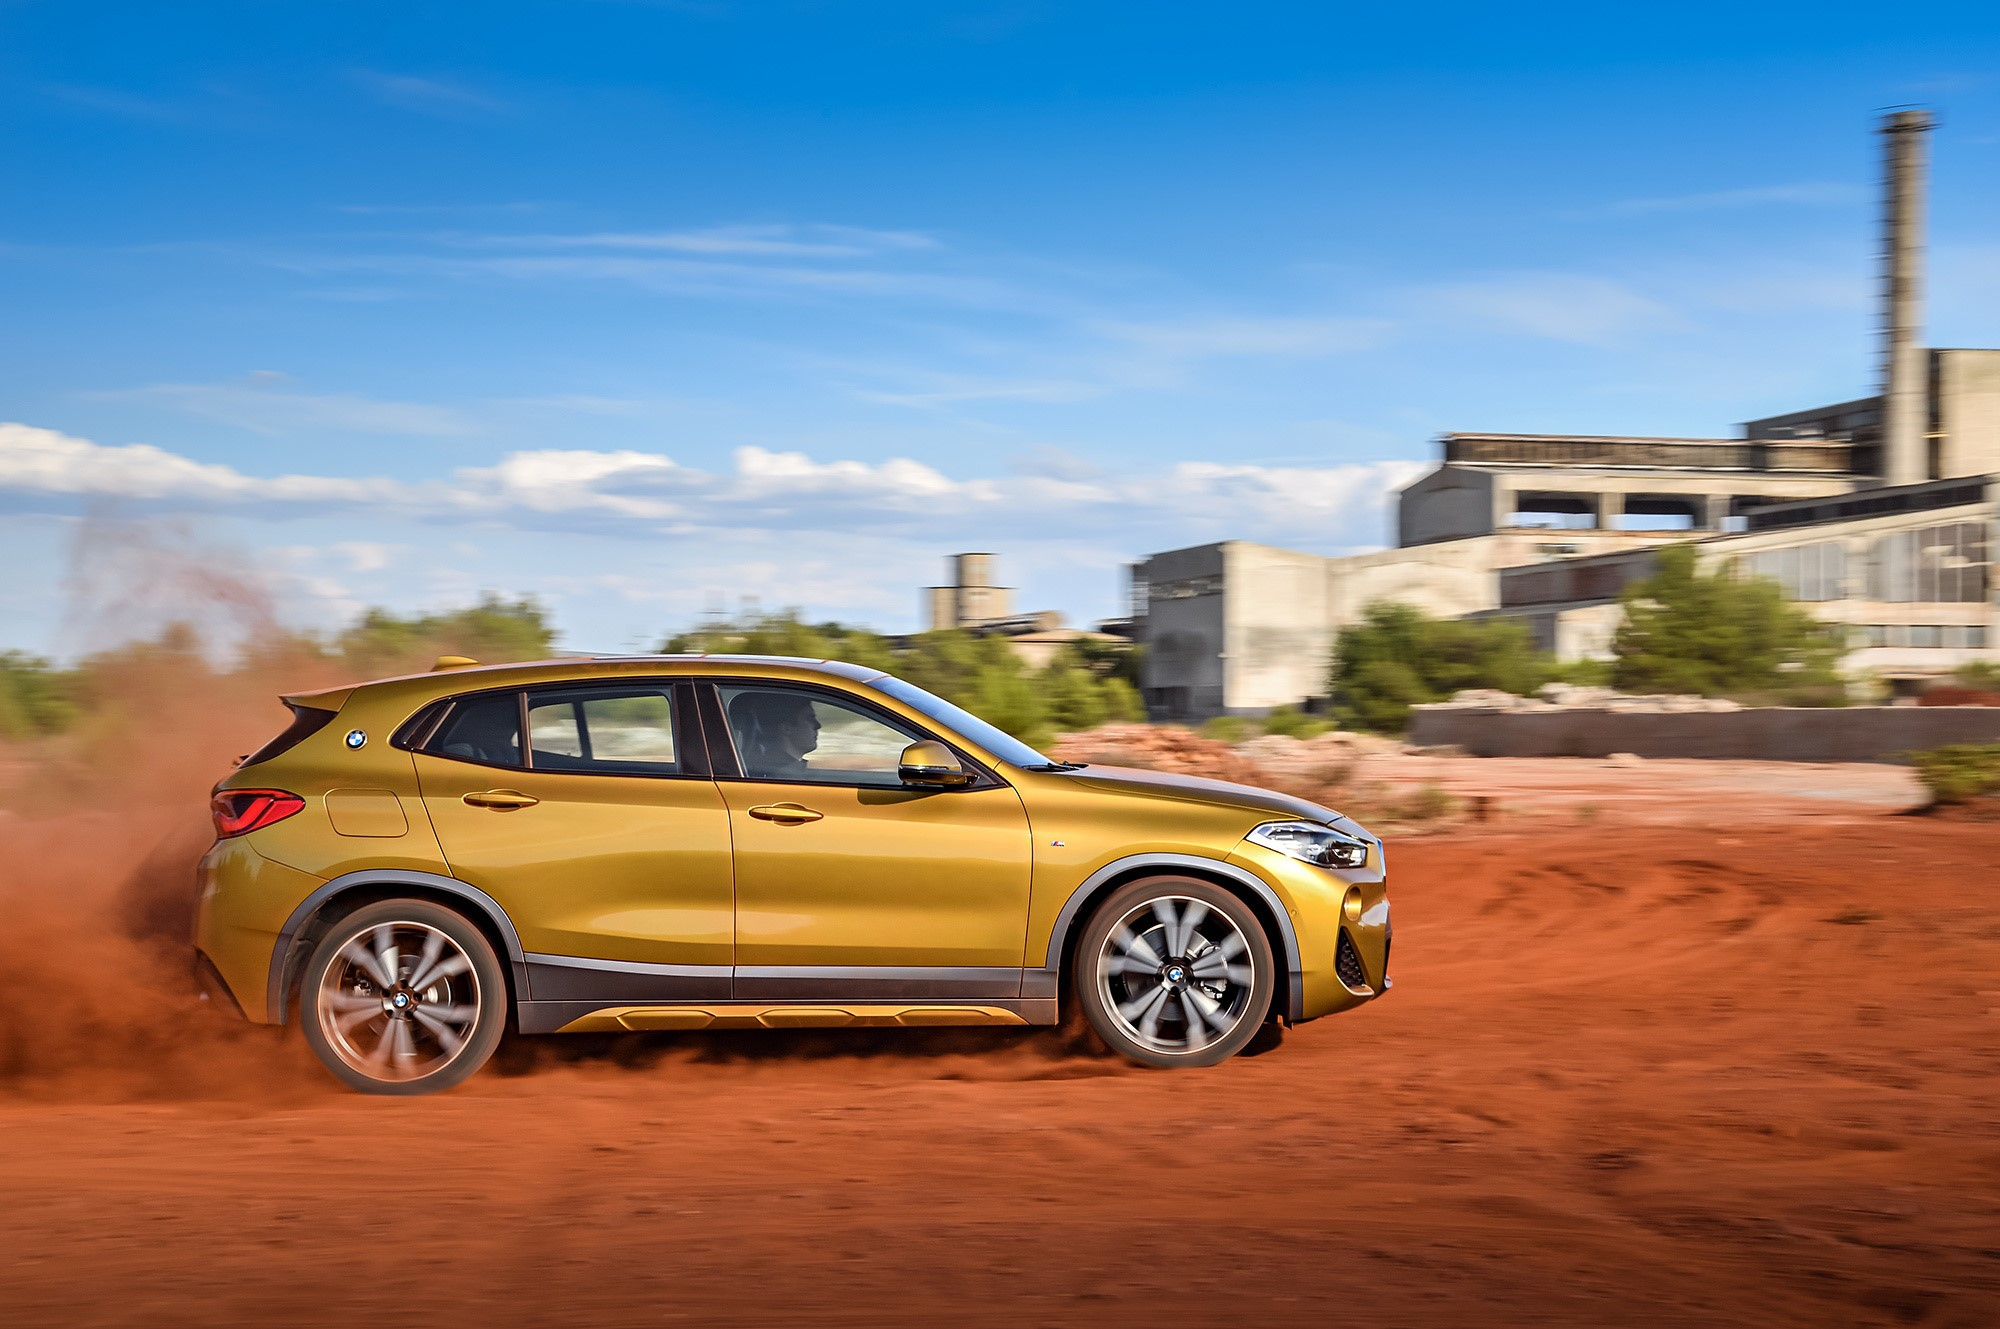 BMW X2 Wallpapers 5